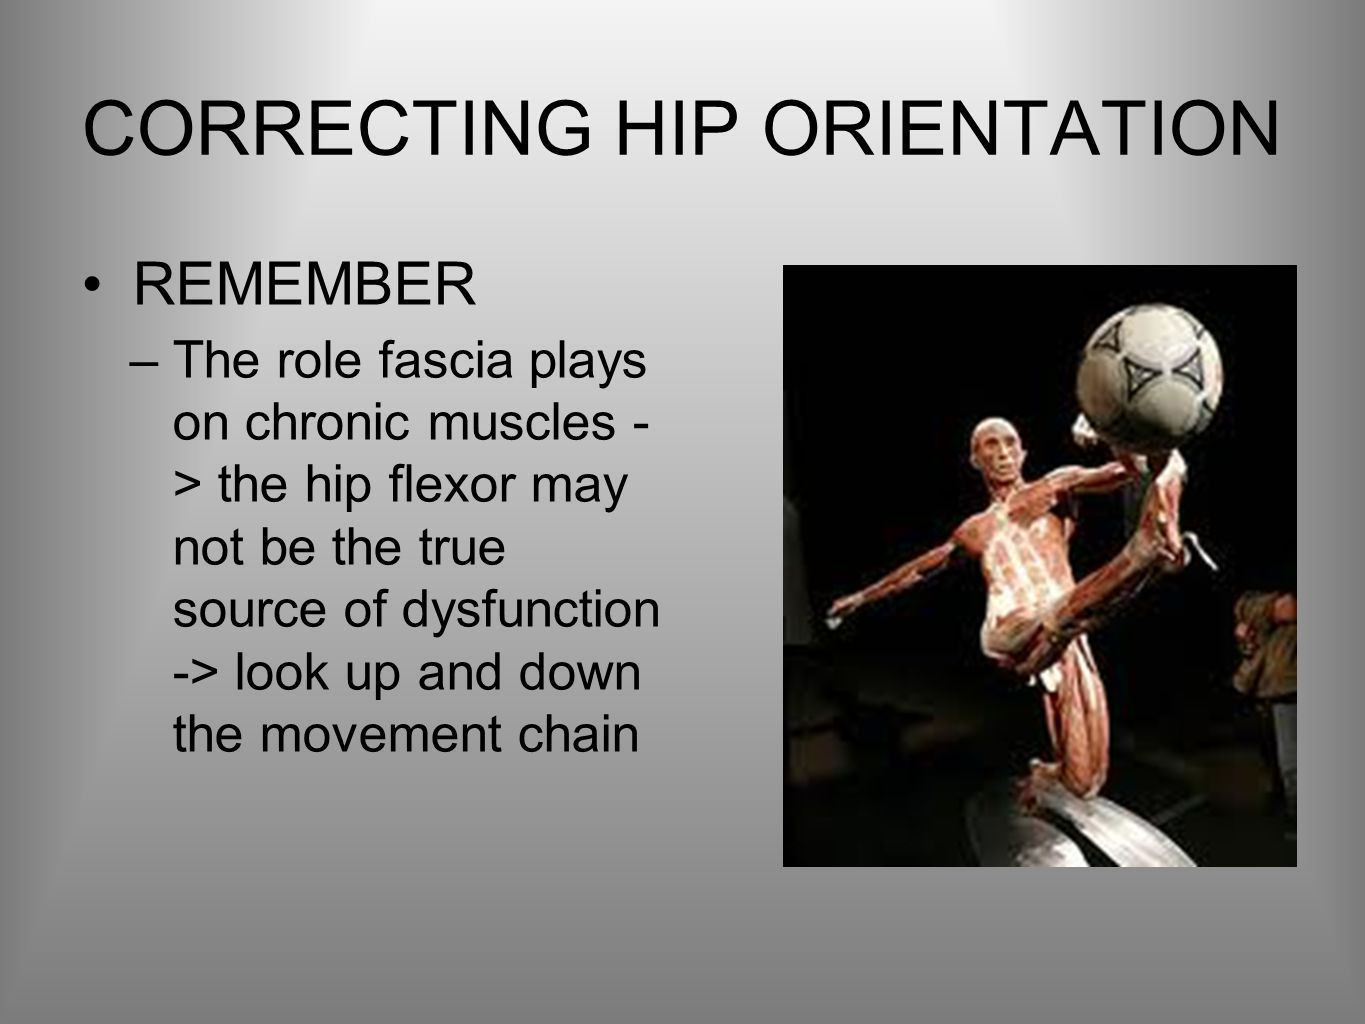 CORRECTING HIP ORIENTATION REMEMBER –The role fascia plays on chronic muscles - > the hip flexor may not be the true source of dysfunction -> look up and down the movement chain